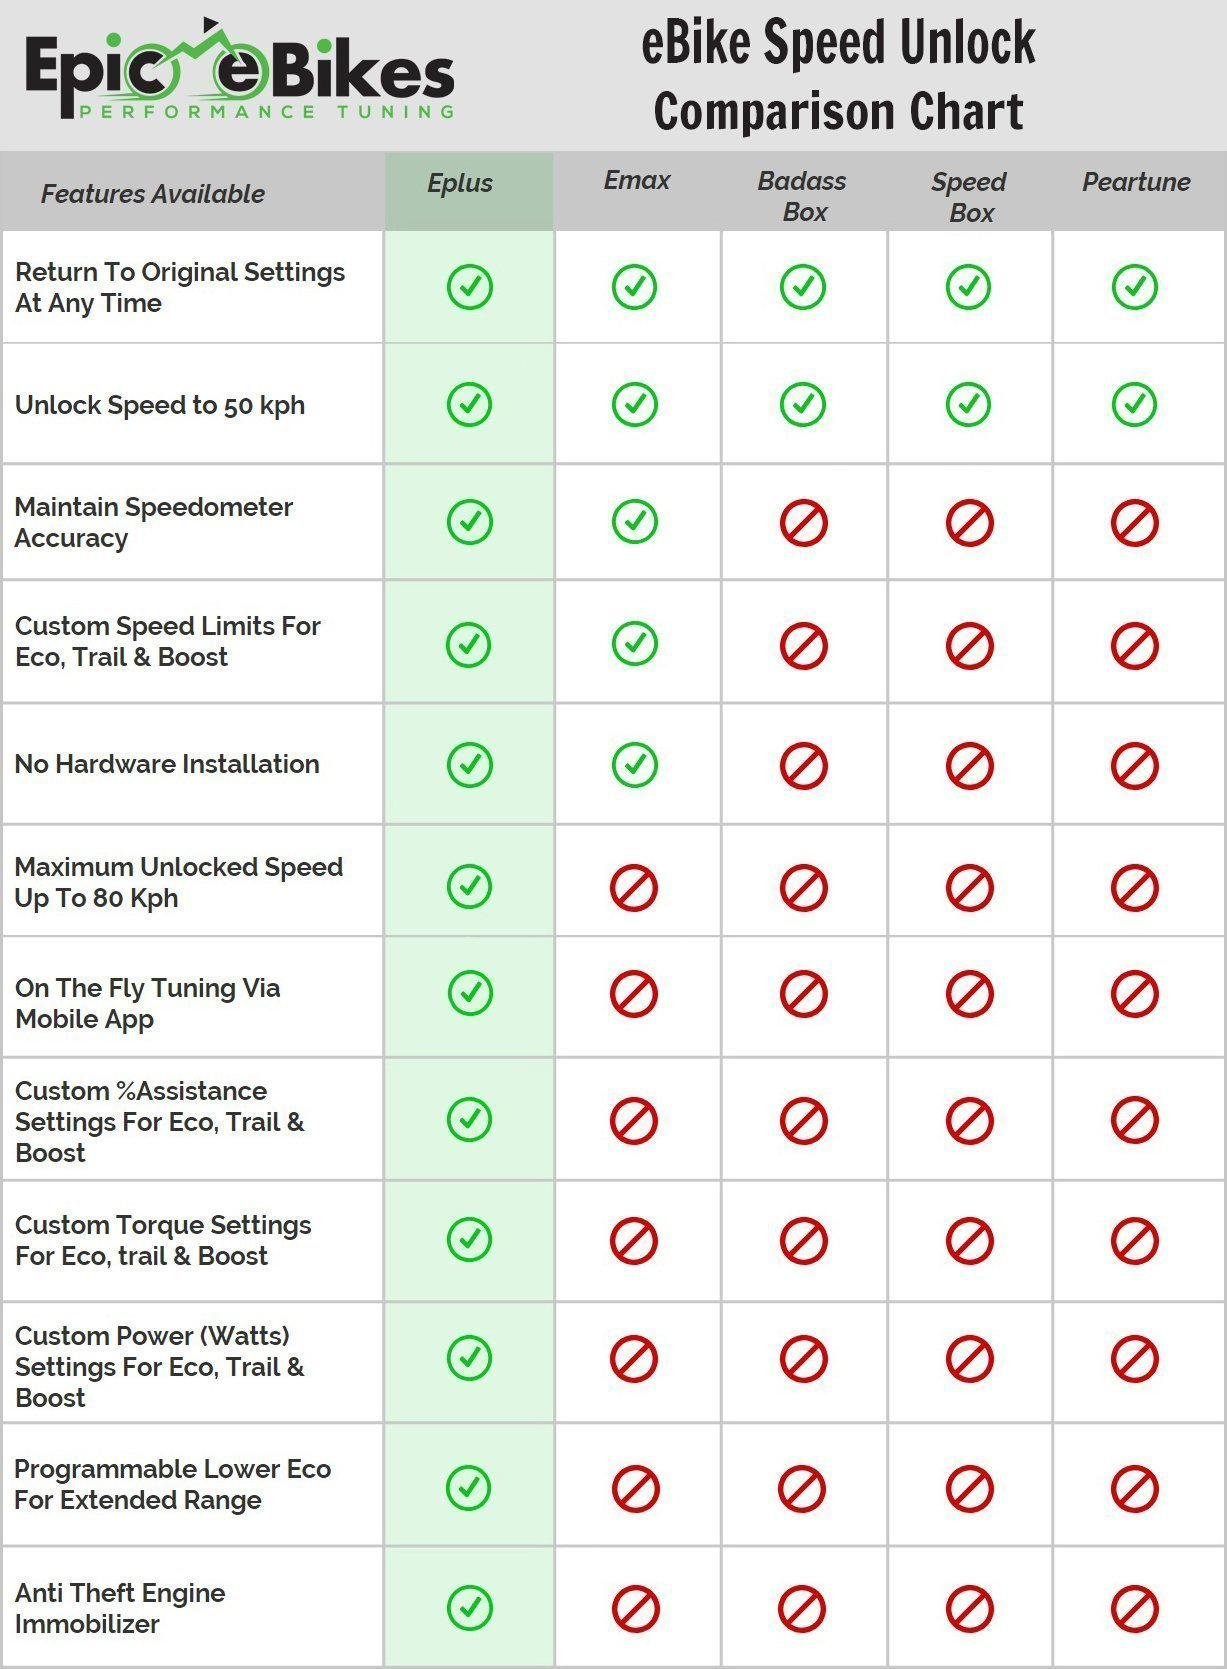 eBike Speed Unlock Comparison Chart